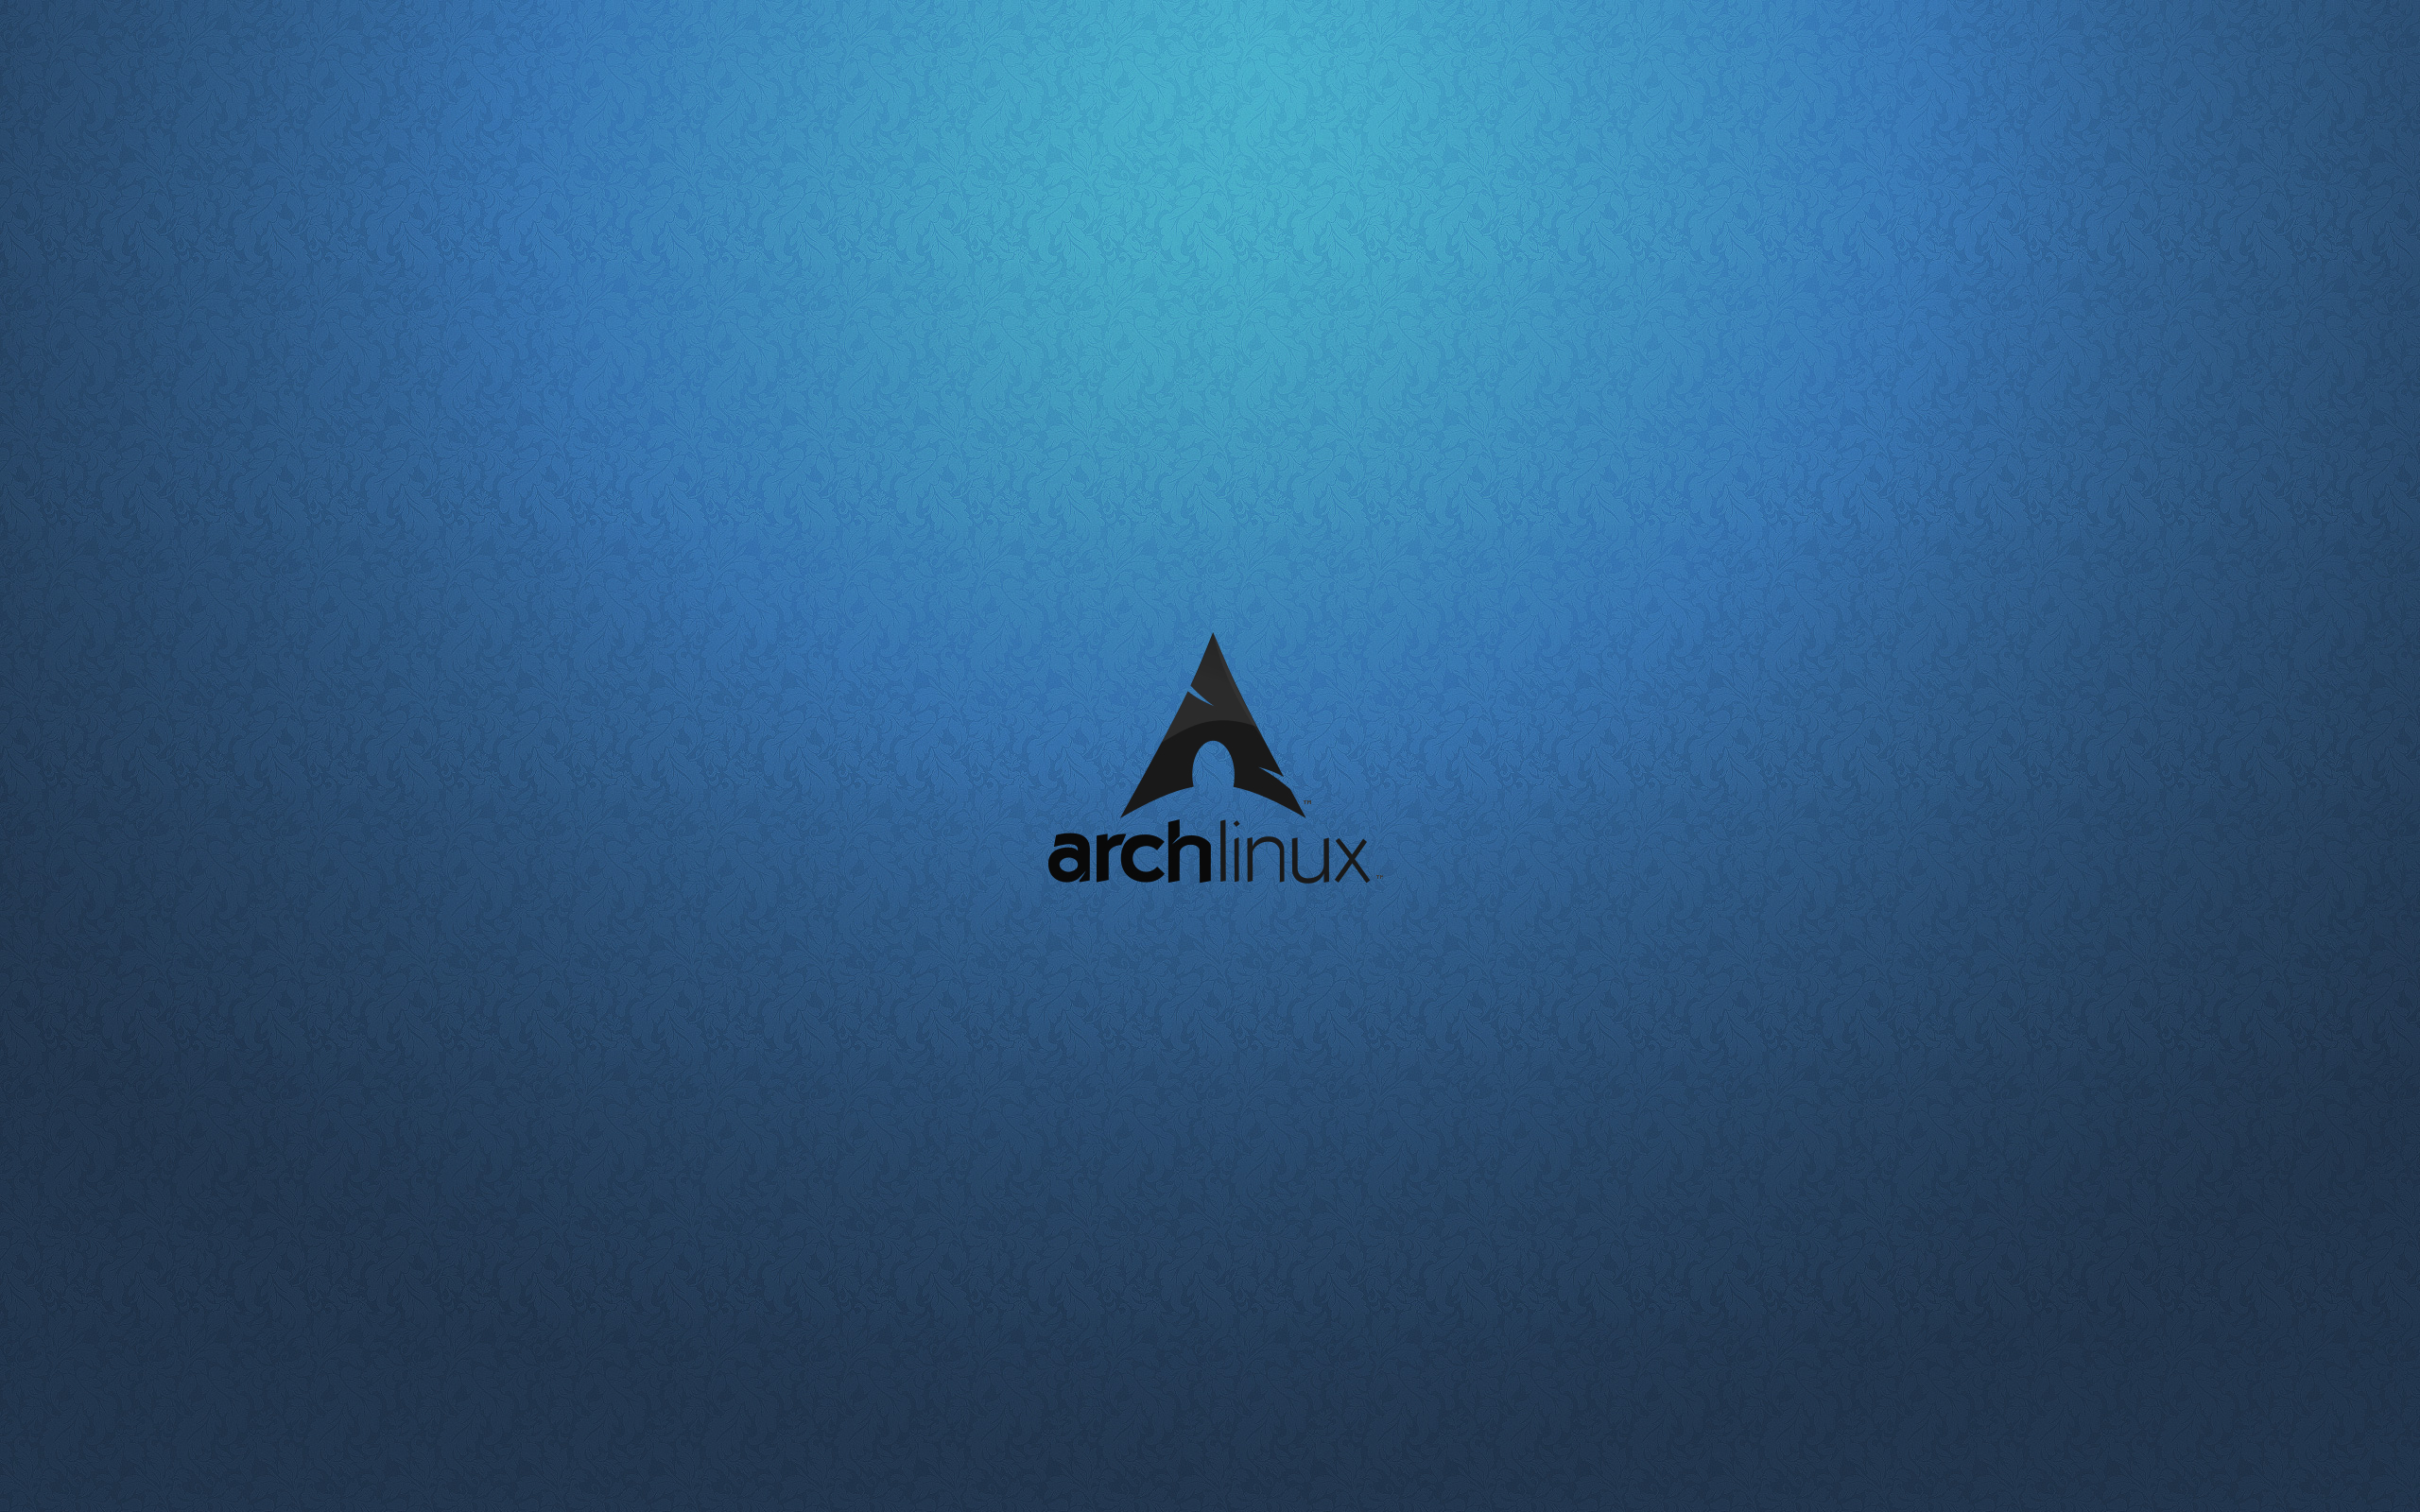 Arch Linux Bluewave by BalanceST